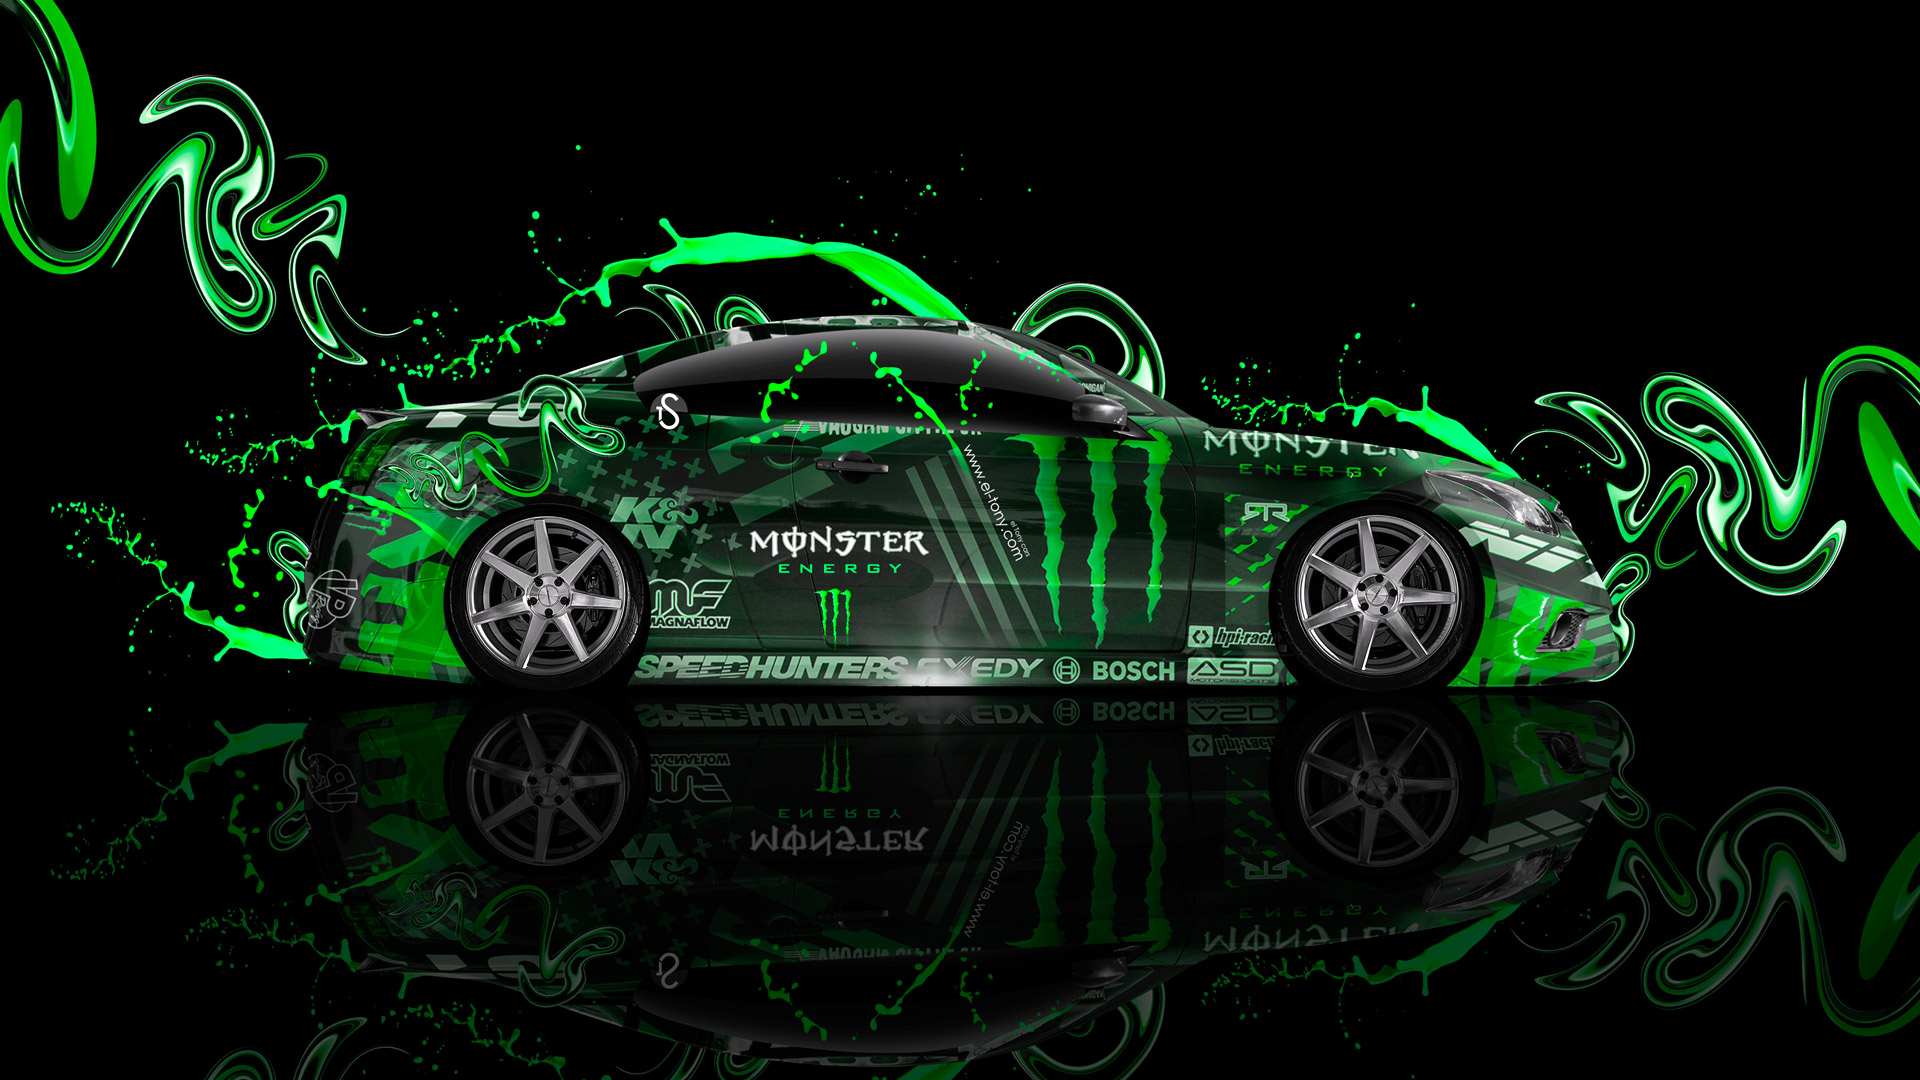 Monster Energy Infiniti G37 Side Plastic Green Live